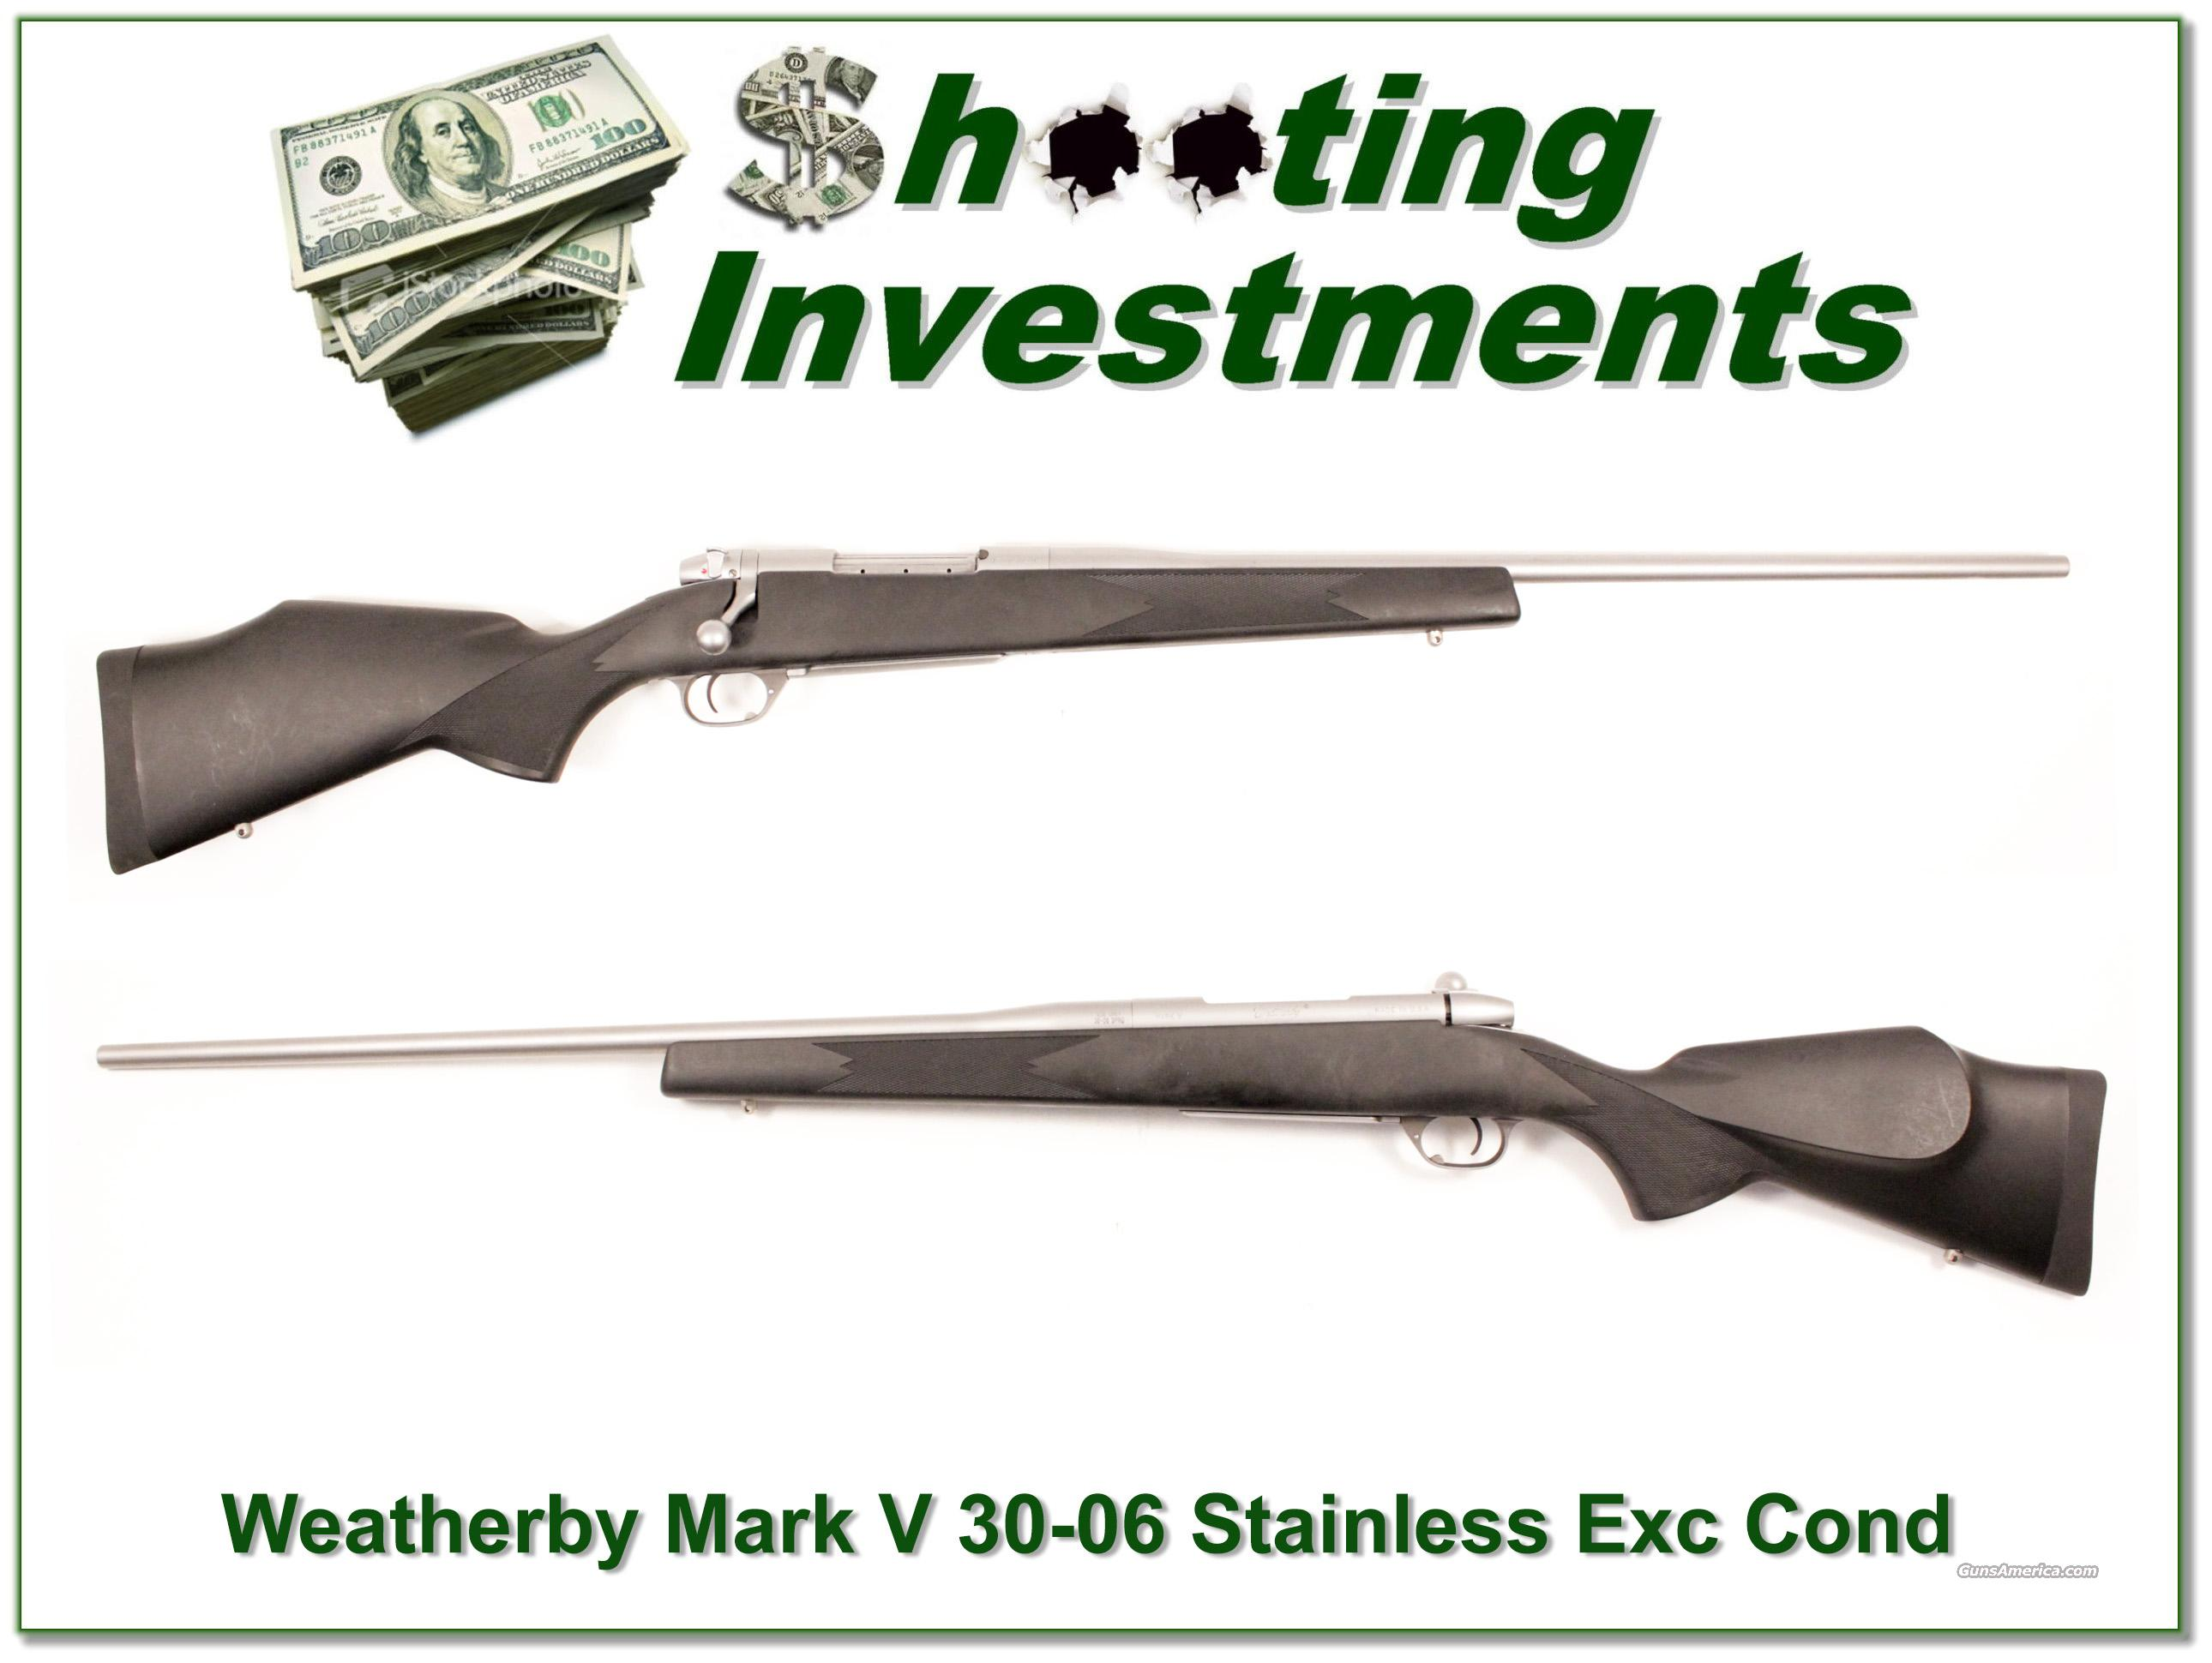 Weatherby Mark V Stainless 30-06 Exc Cond!  Guns > Rifles > Weatherby Rifles > Sporting